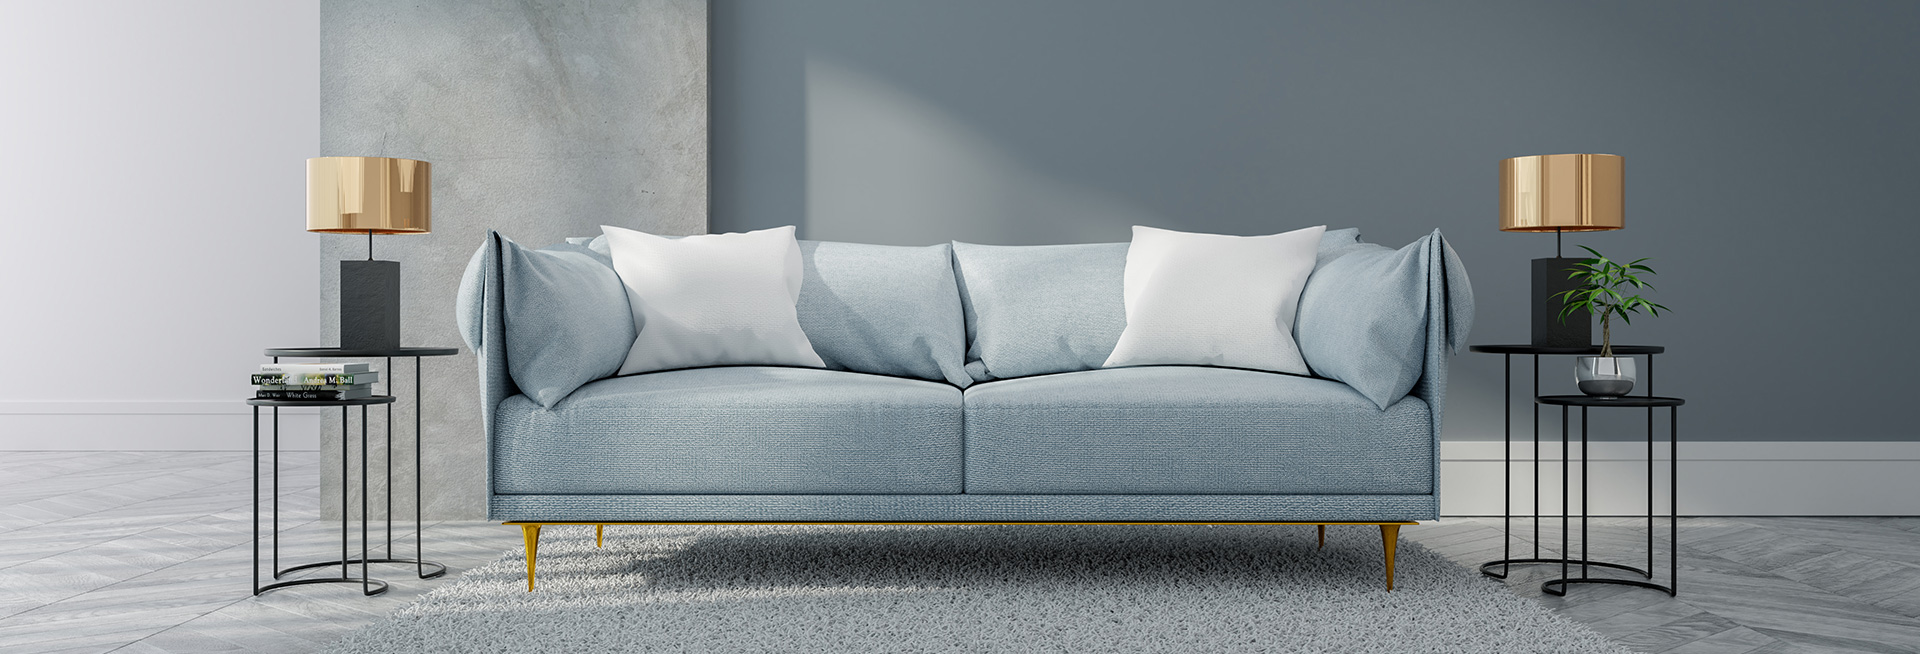 Luxury Sofa's By Luxflat